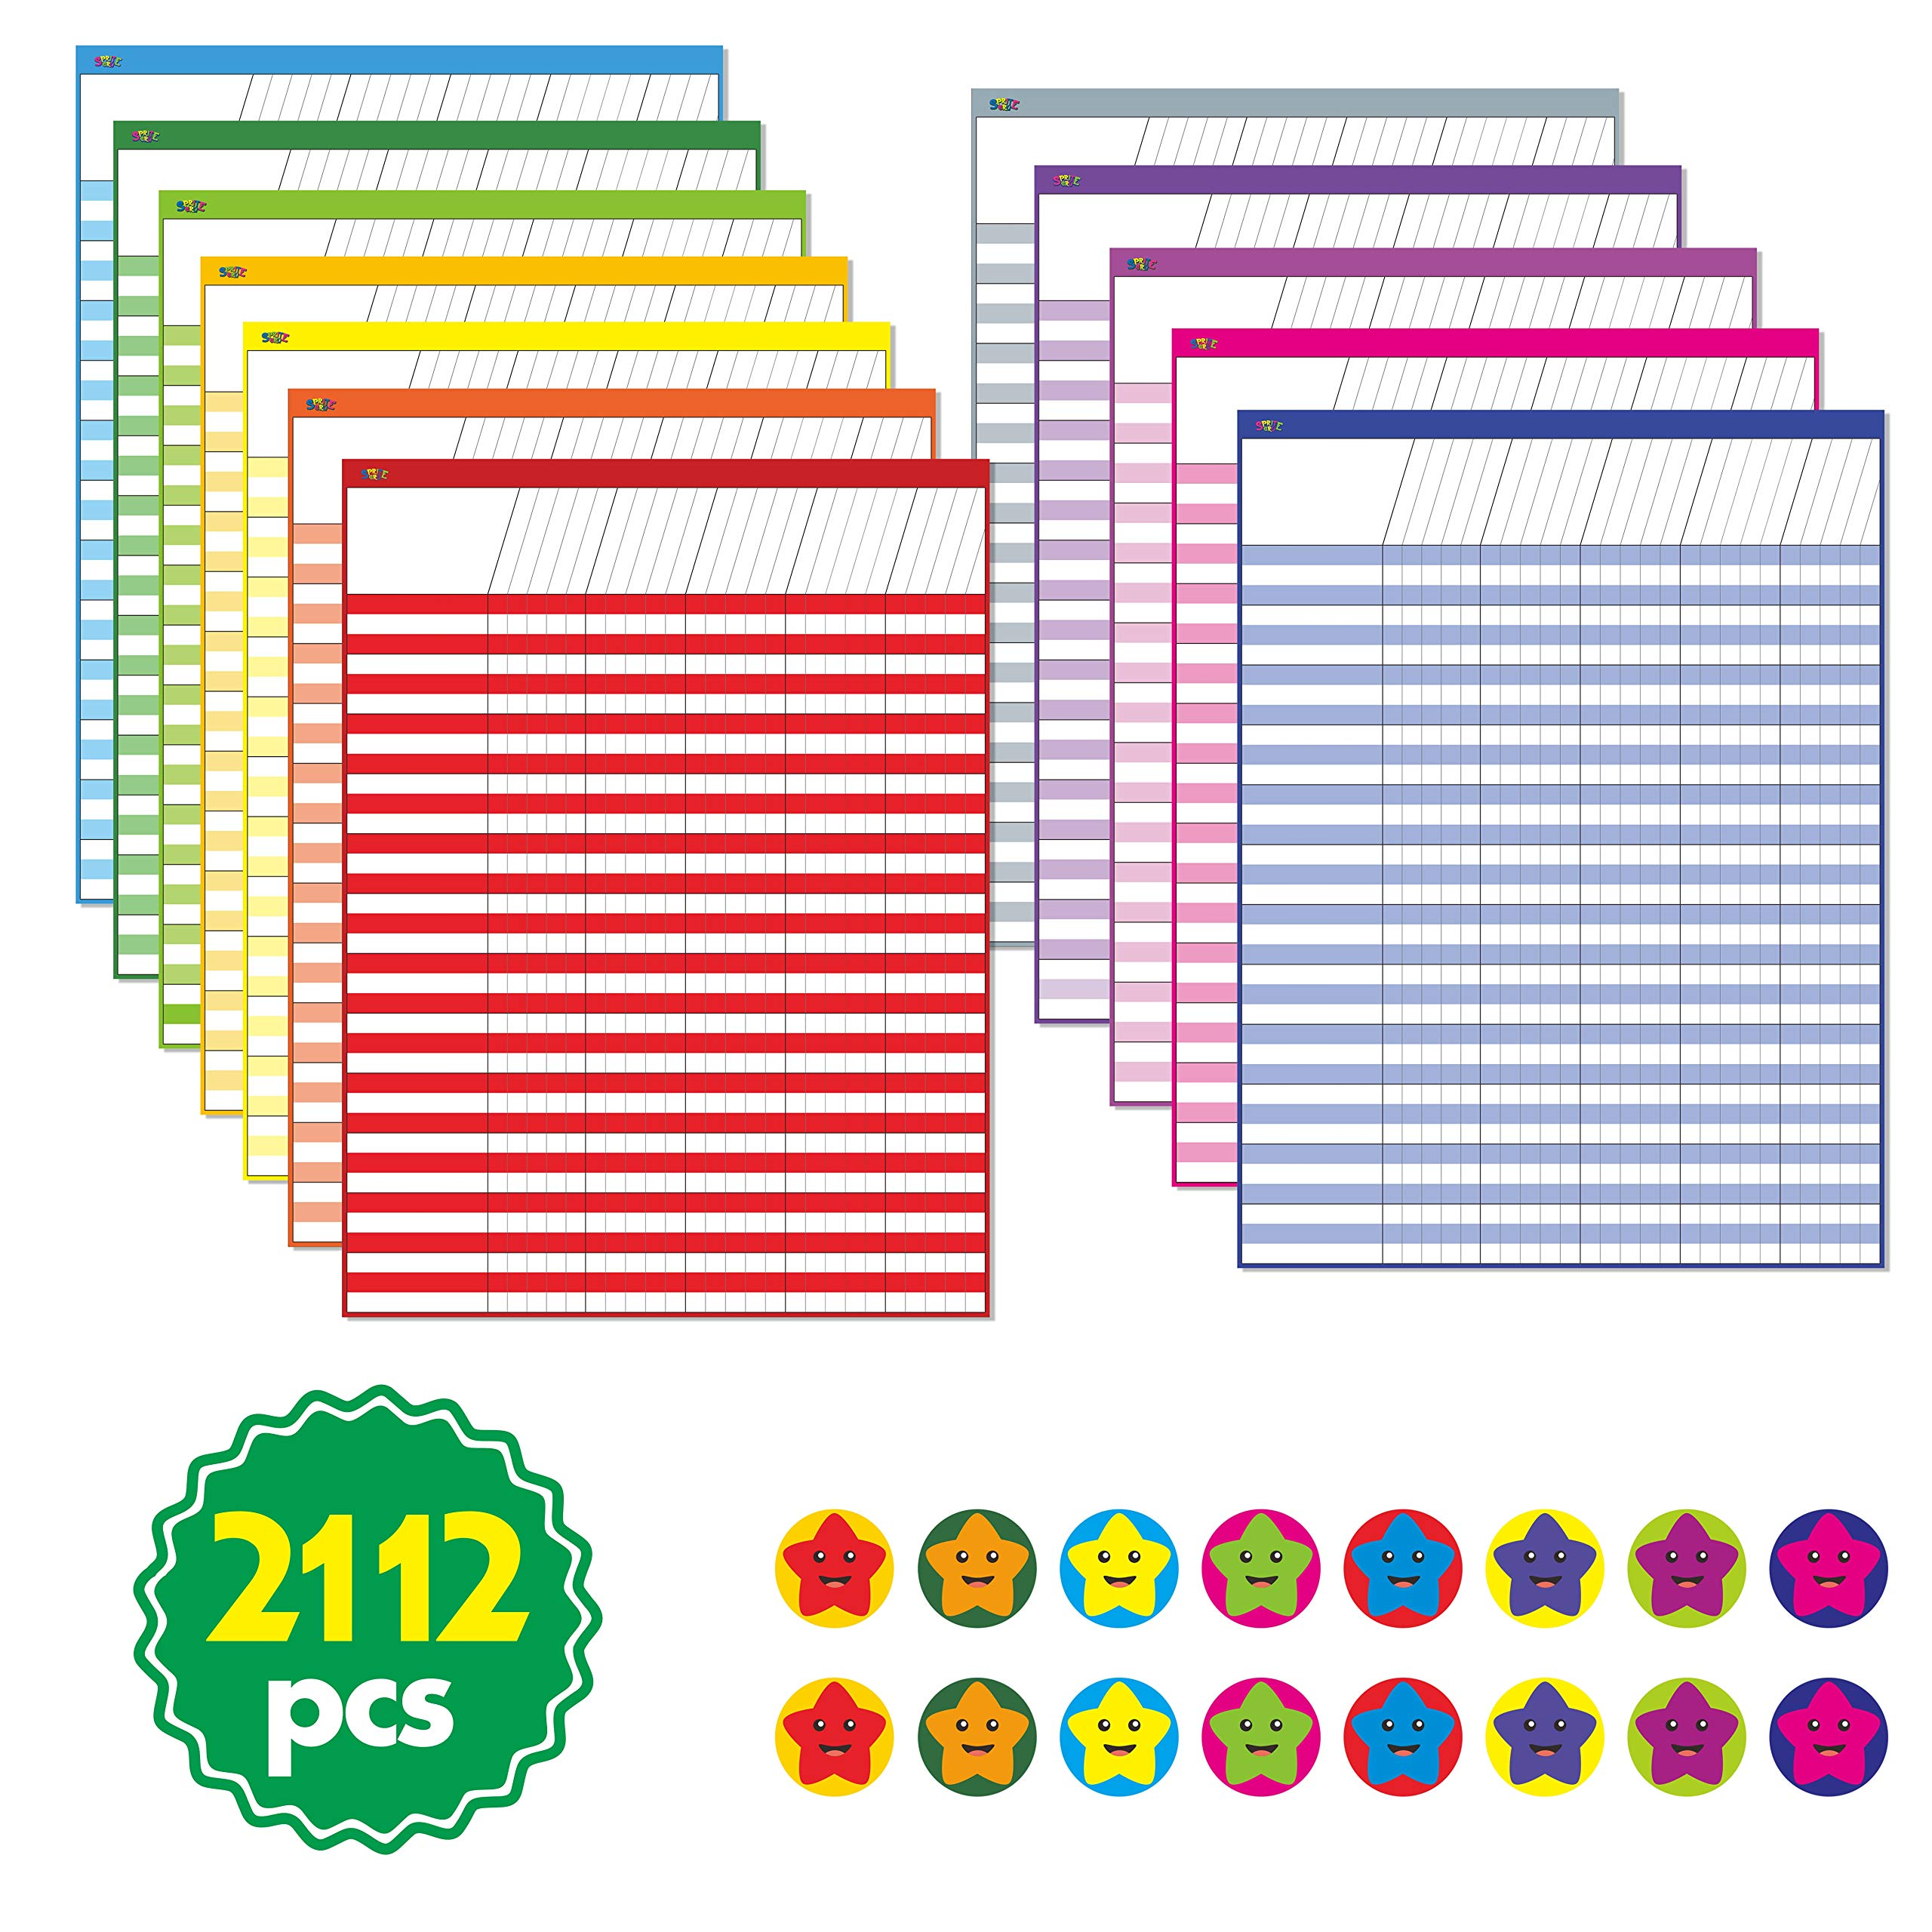 12 Pack Multi-Color Laminated Dry Rease Incentive Chart/Chore/Responsibility/School Attendance/Homework Progress Tracking Chart with 2112 Reward Star Stickers, (17'' x 22'') by SpriteGru